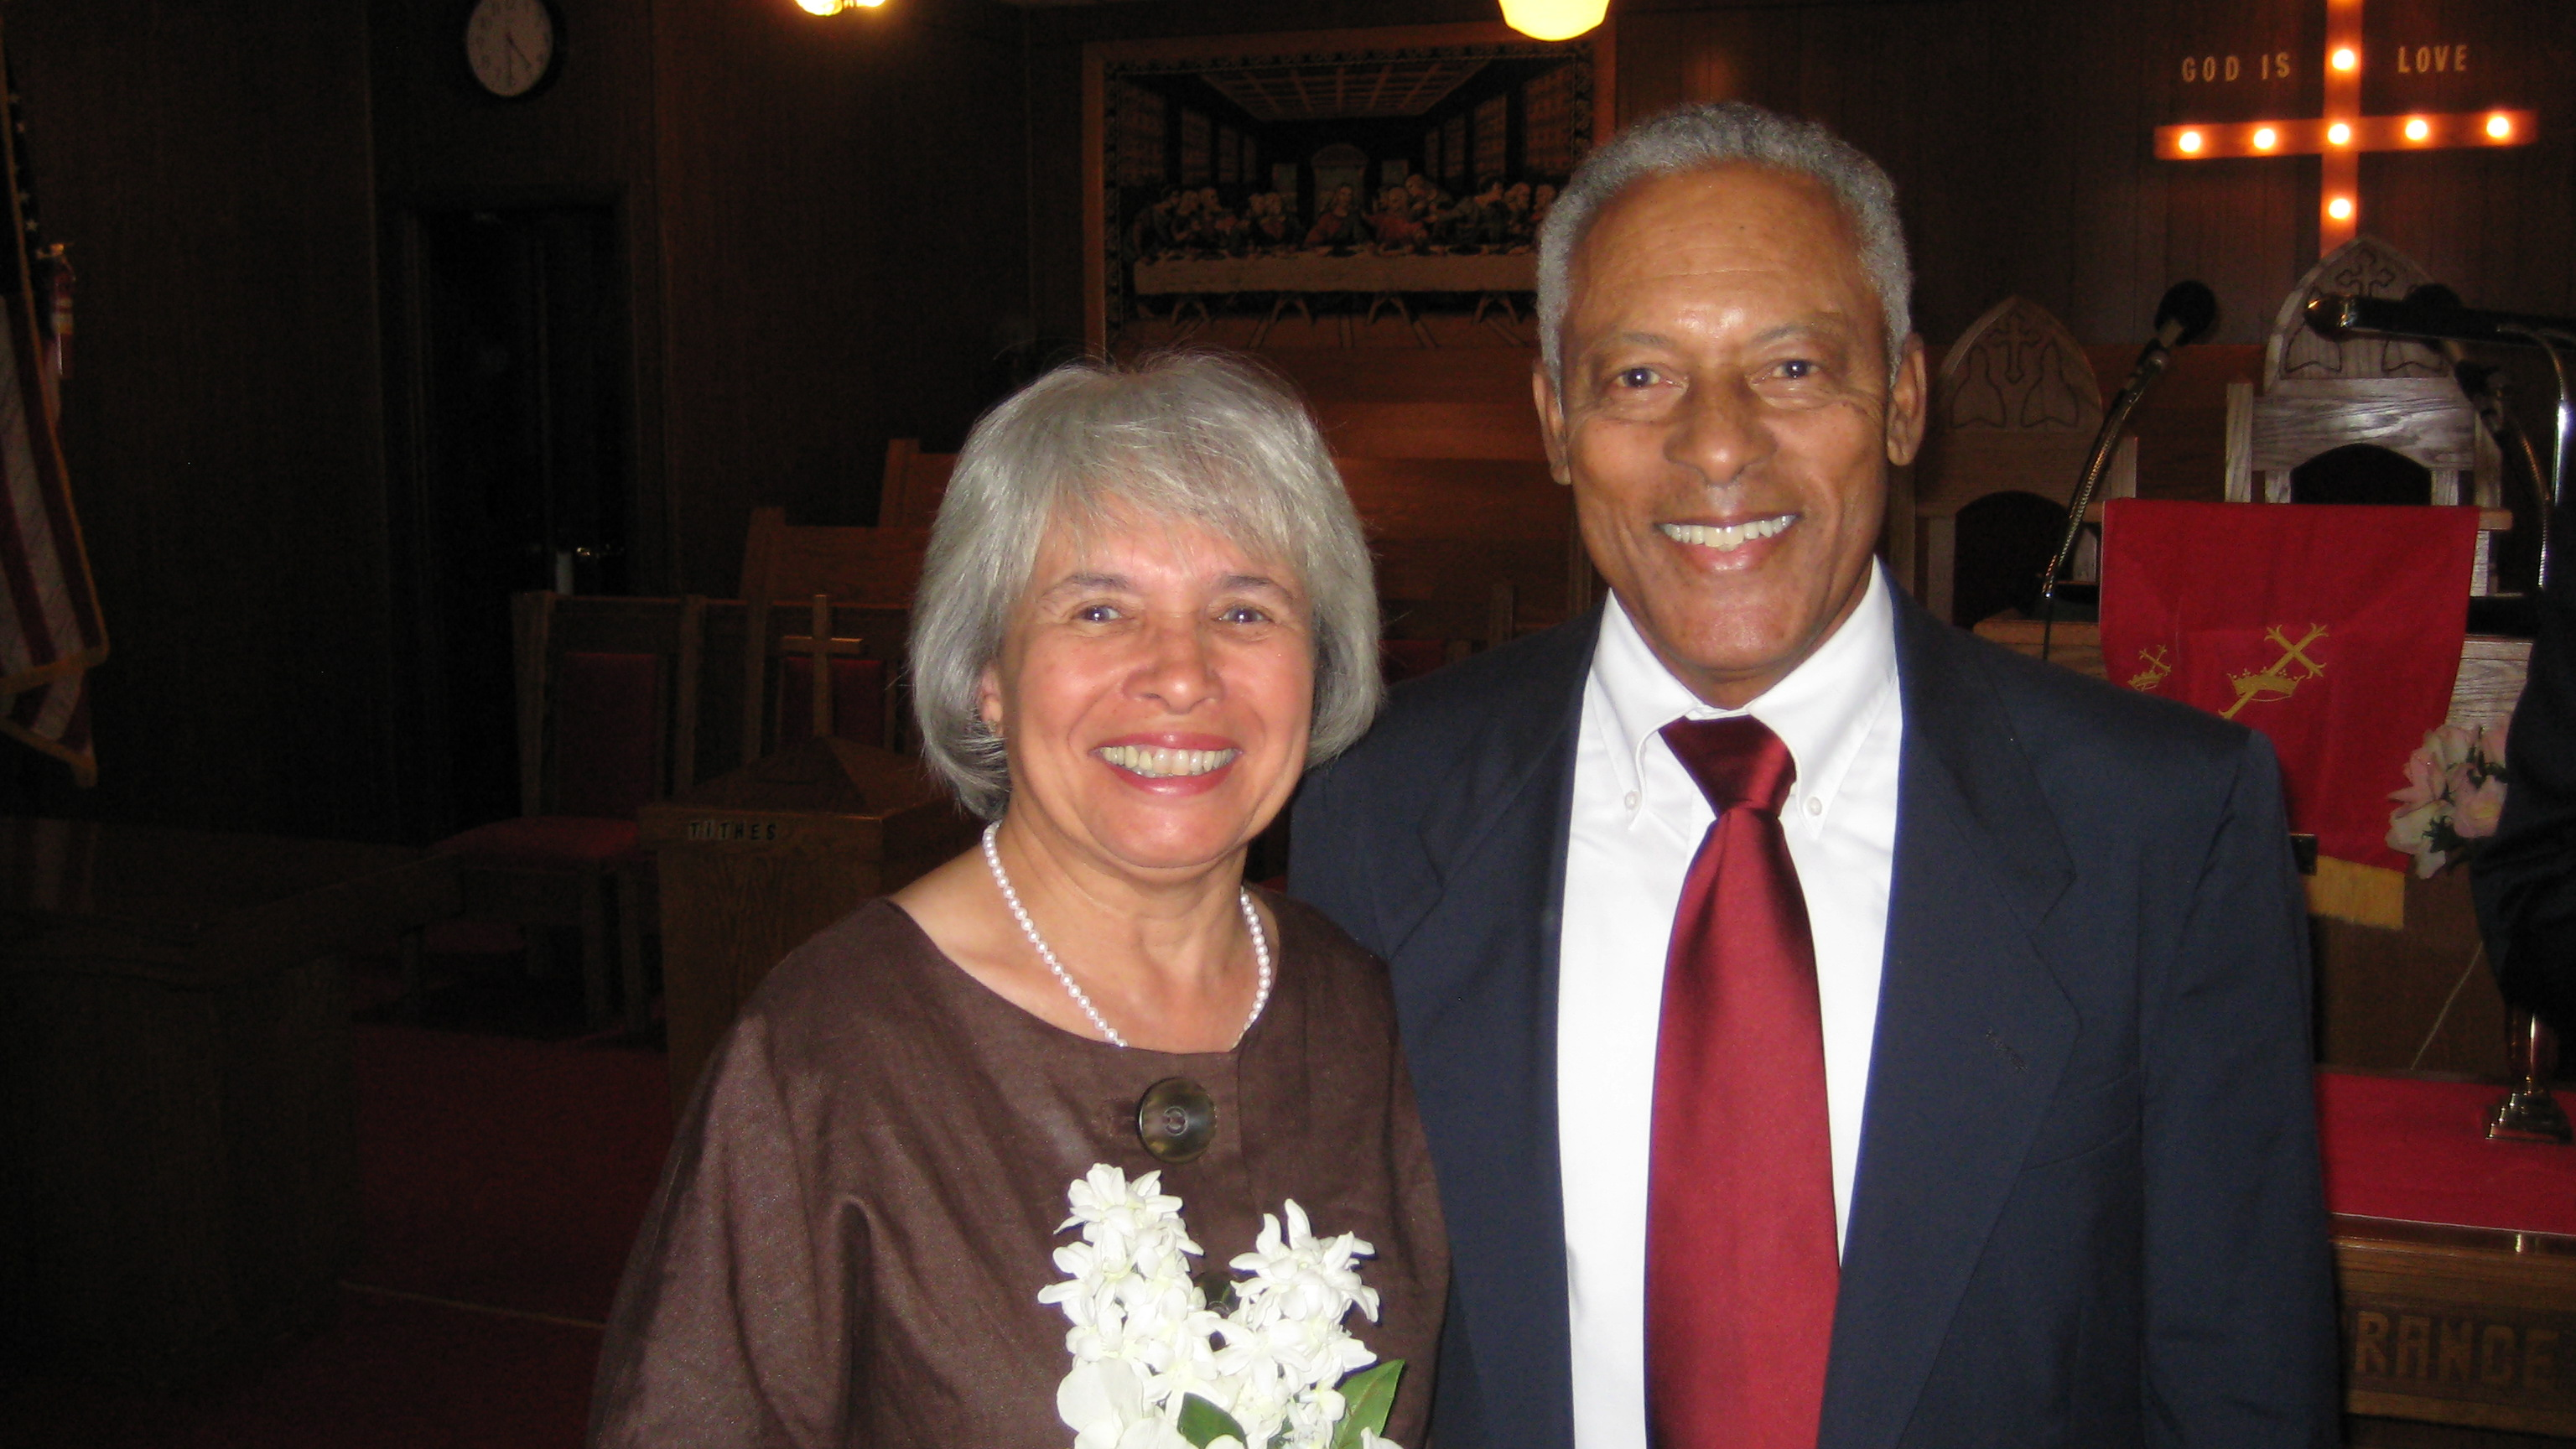 Mom and Dad -- 46 years of marriage